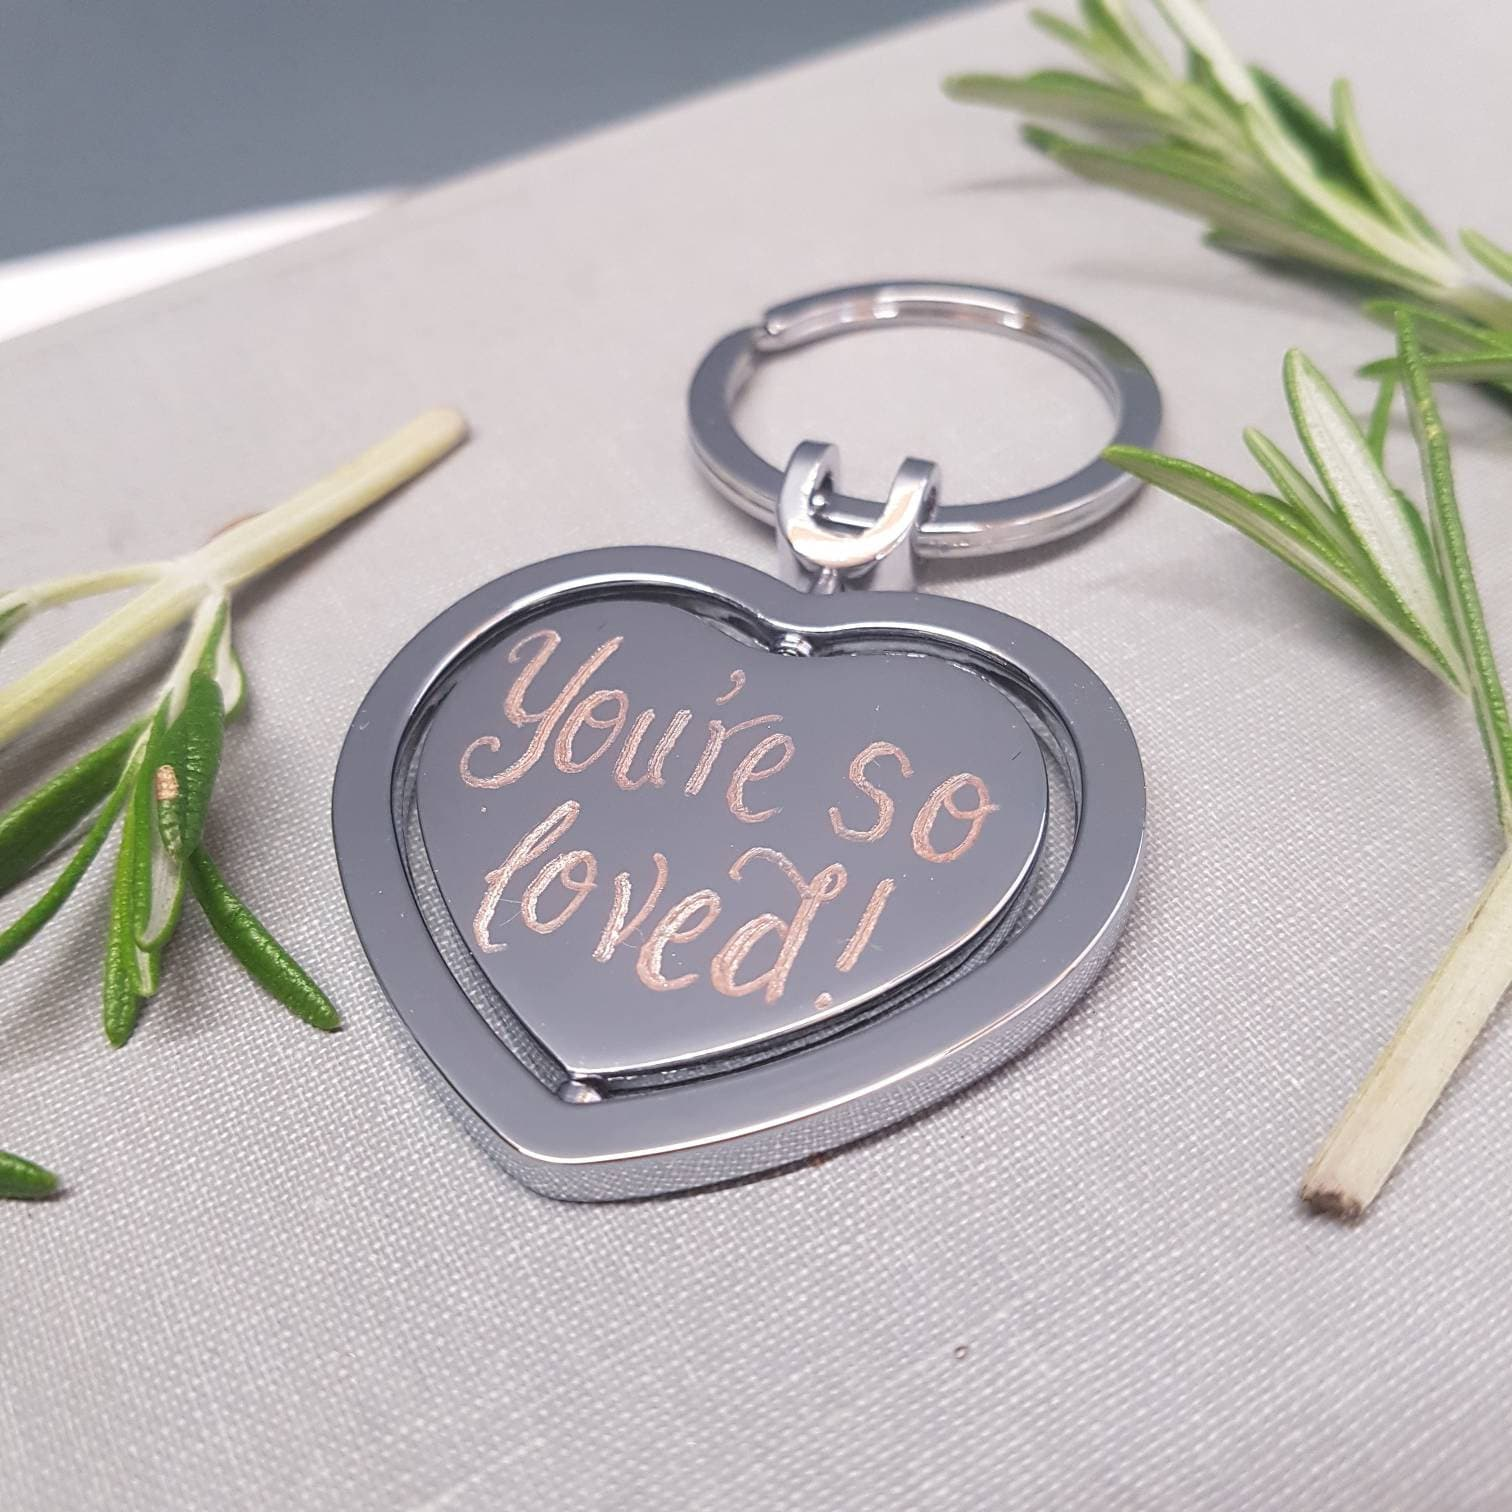 personalised keyring silver plated key ring engraved heart christmas gift ideas gifts for dad bridesmaid gift wedding favours